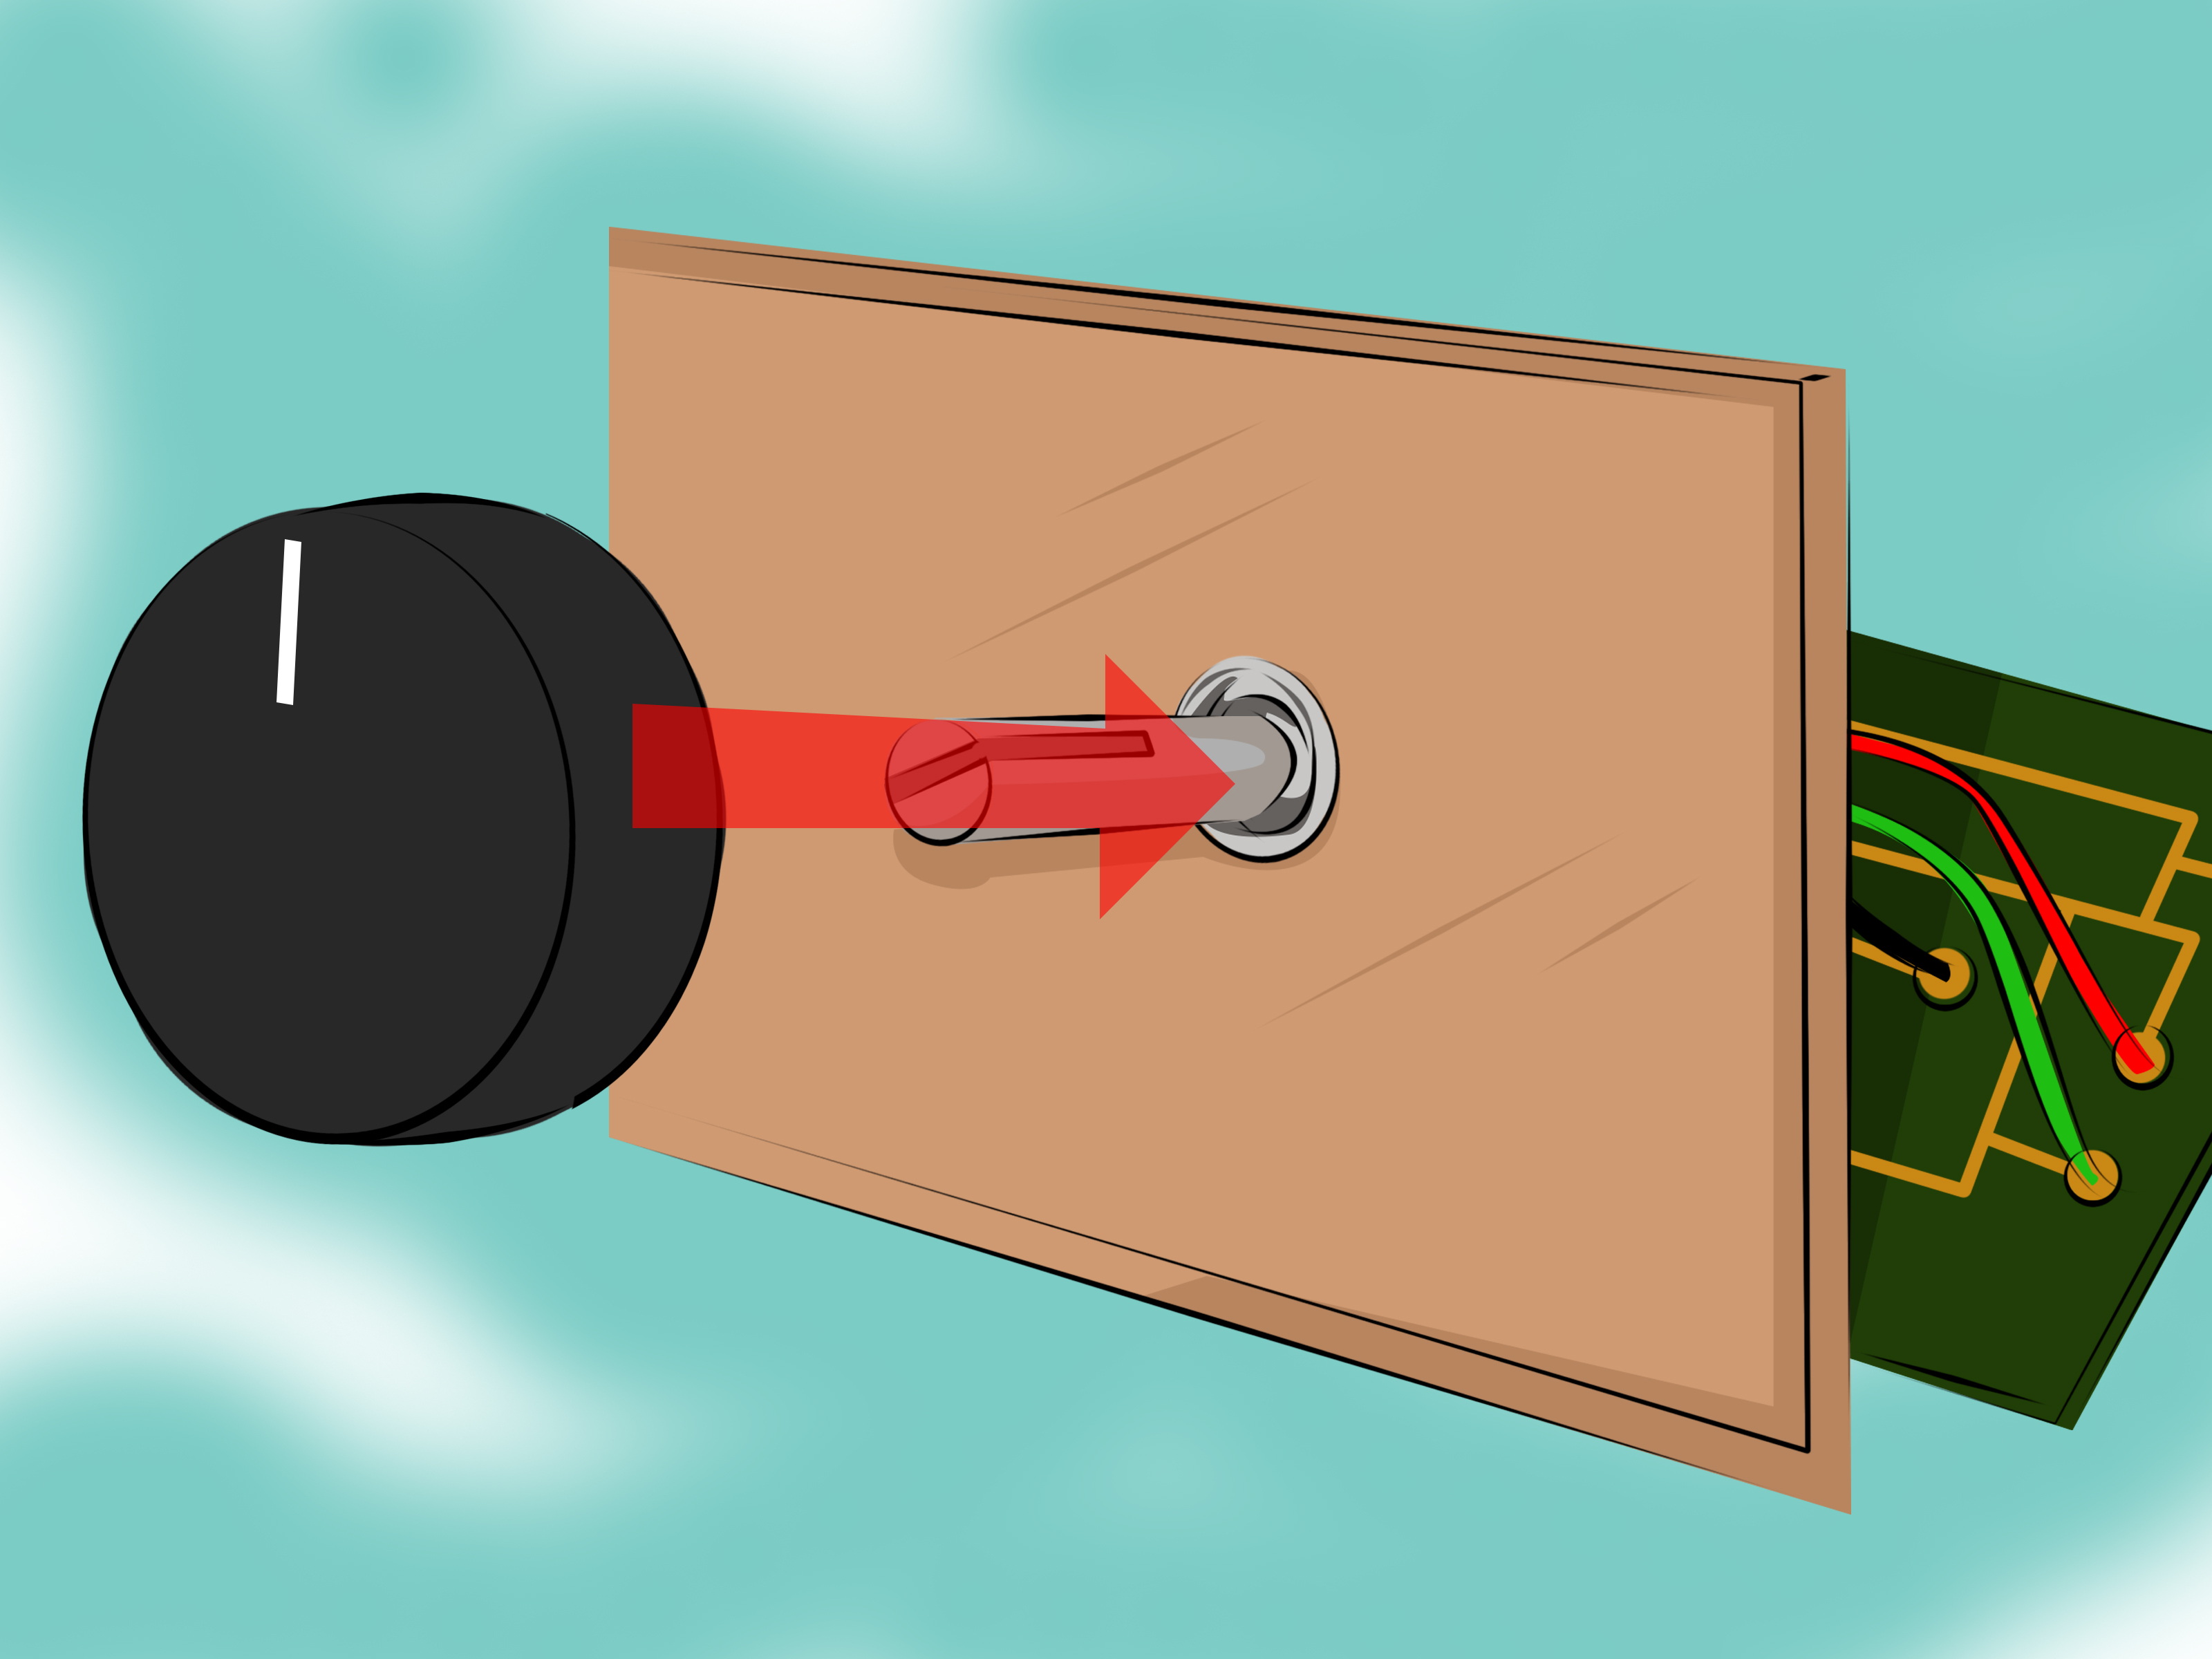 10v Dimmer Circuit Diagram Ein Potentiometer Verdrahten Wikihow